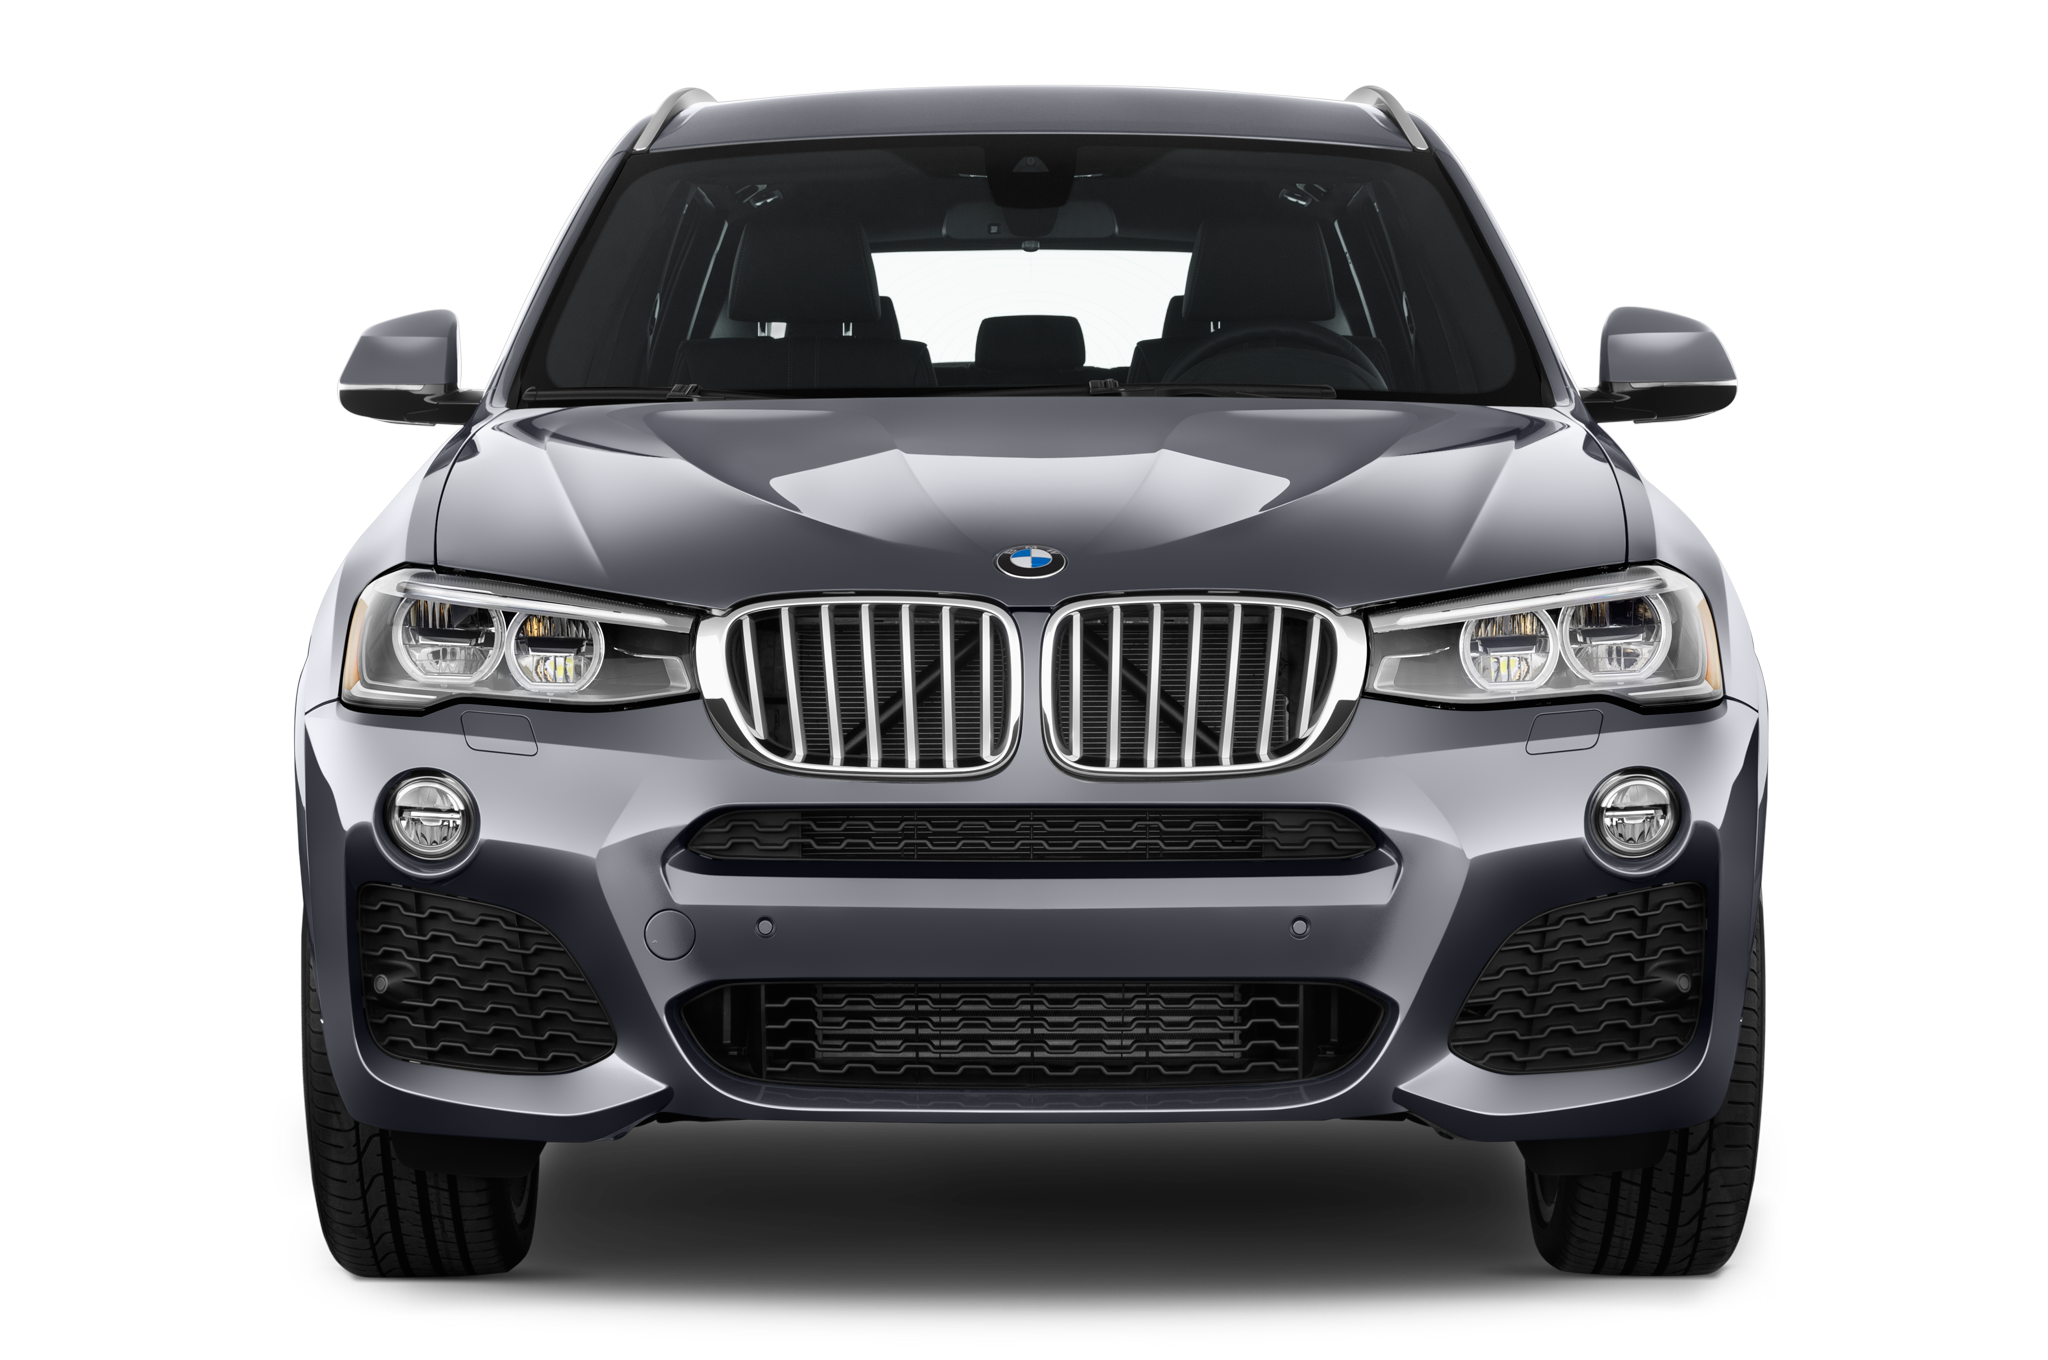 Bmw X3 Xdrive28i 2015 International Price Overview